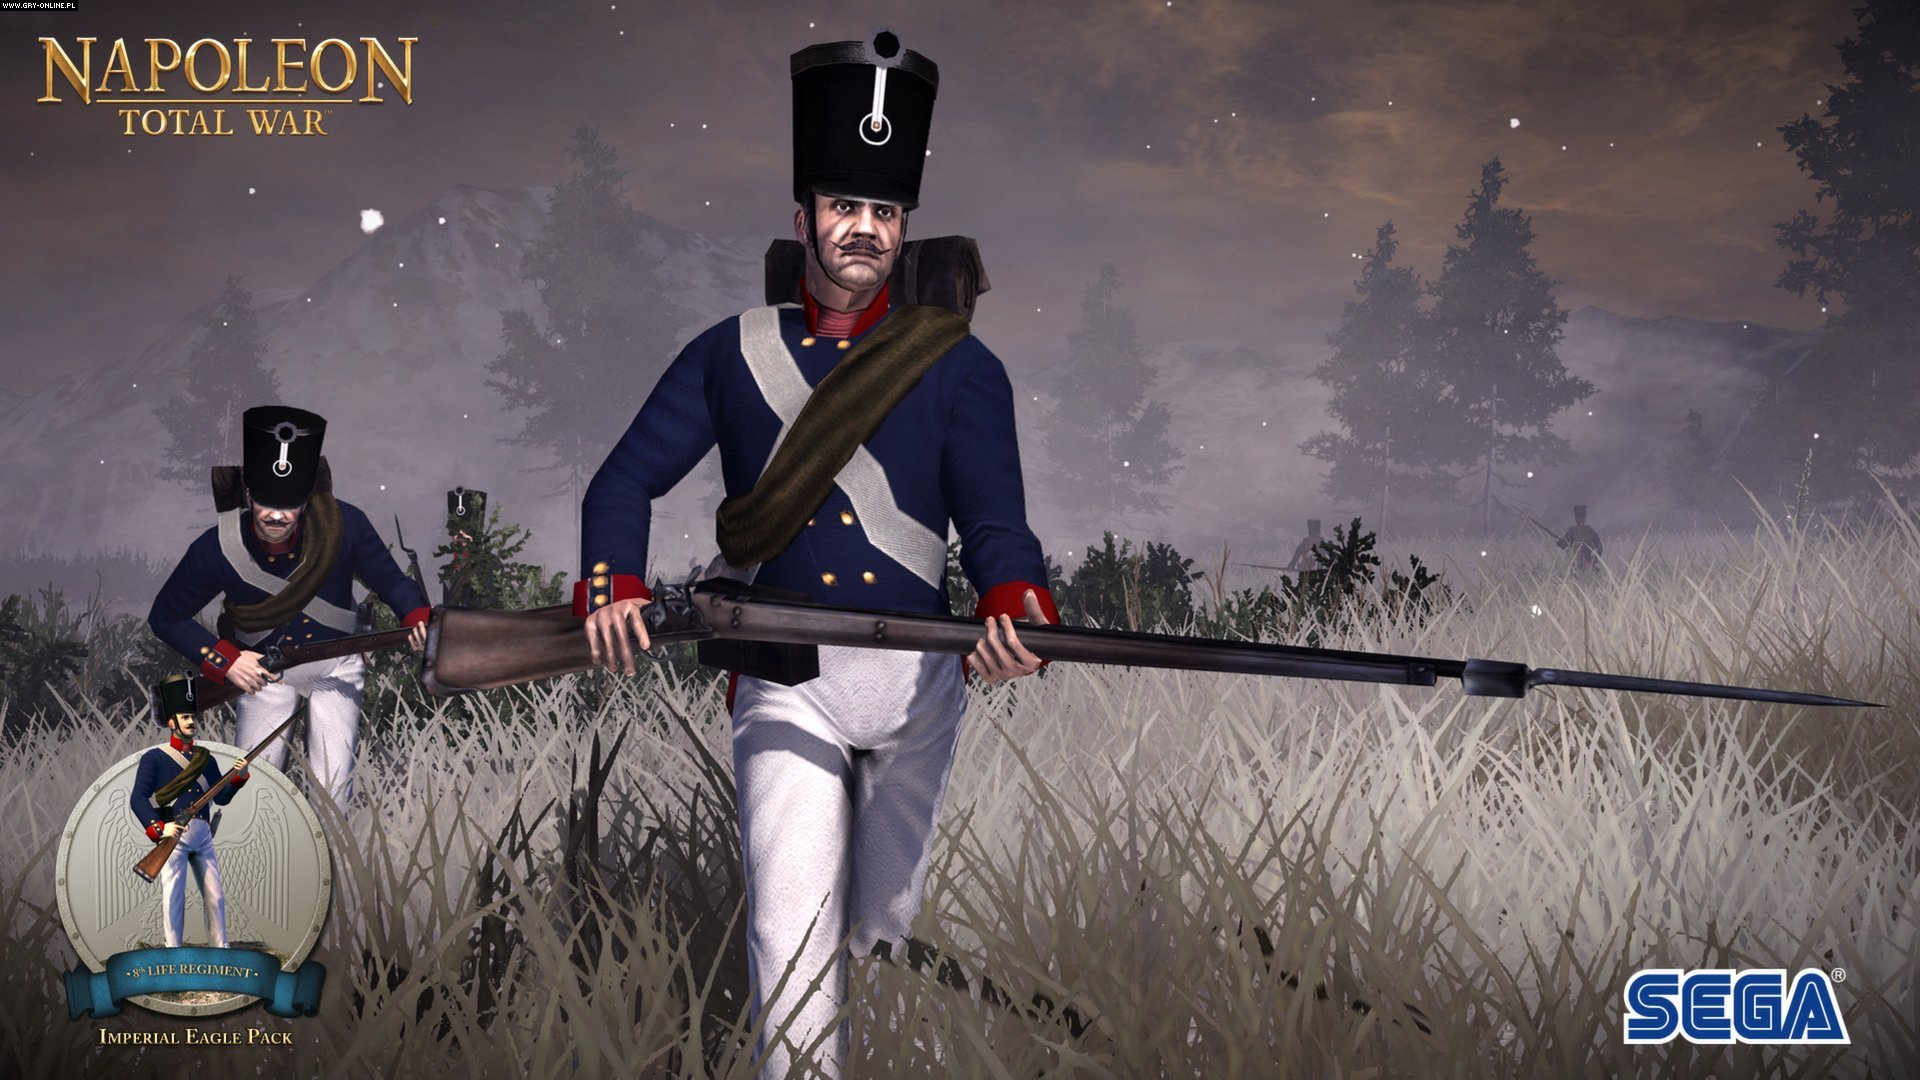 Napoleon: Total War PC Gry Screen 5/100, Creative Assembly, SEGA